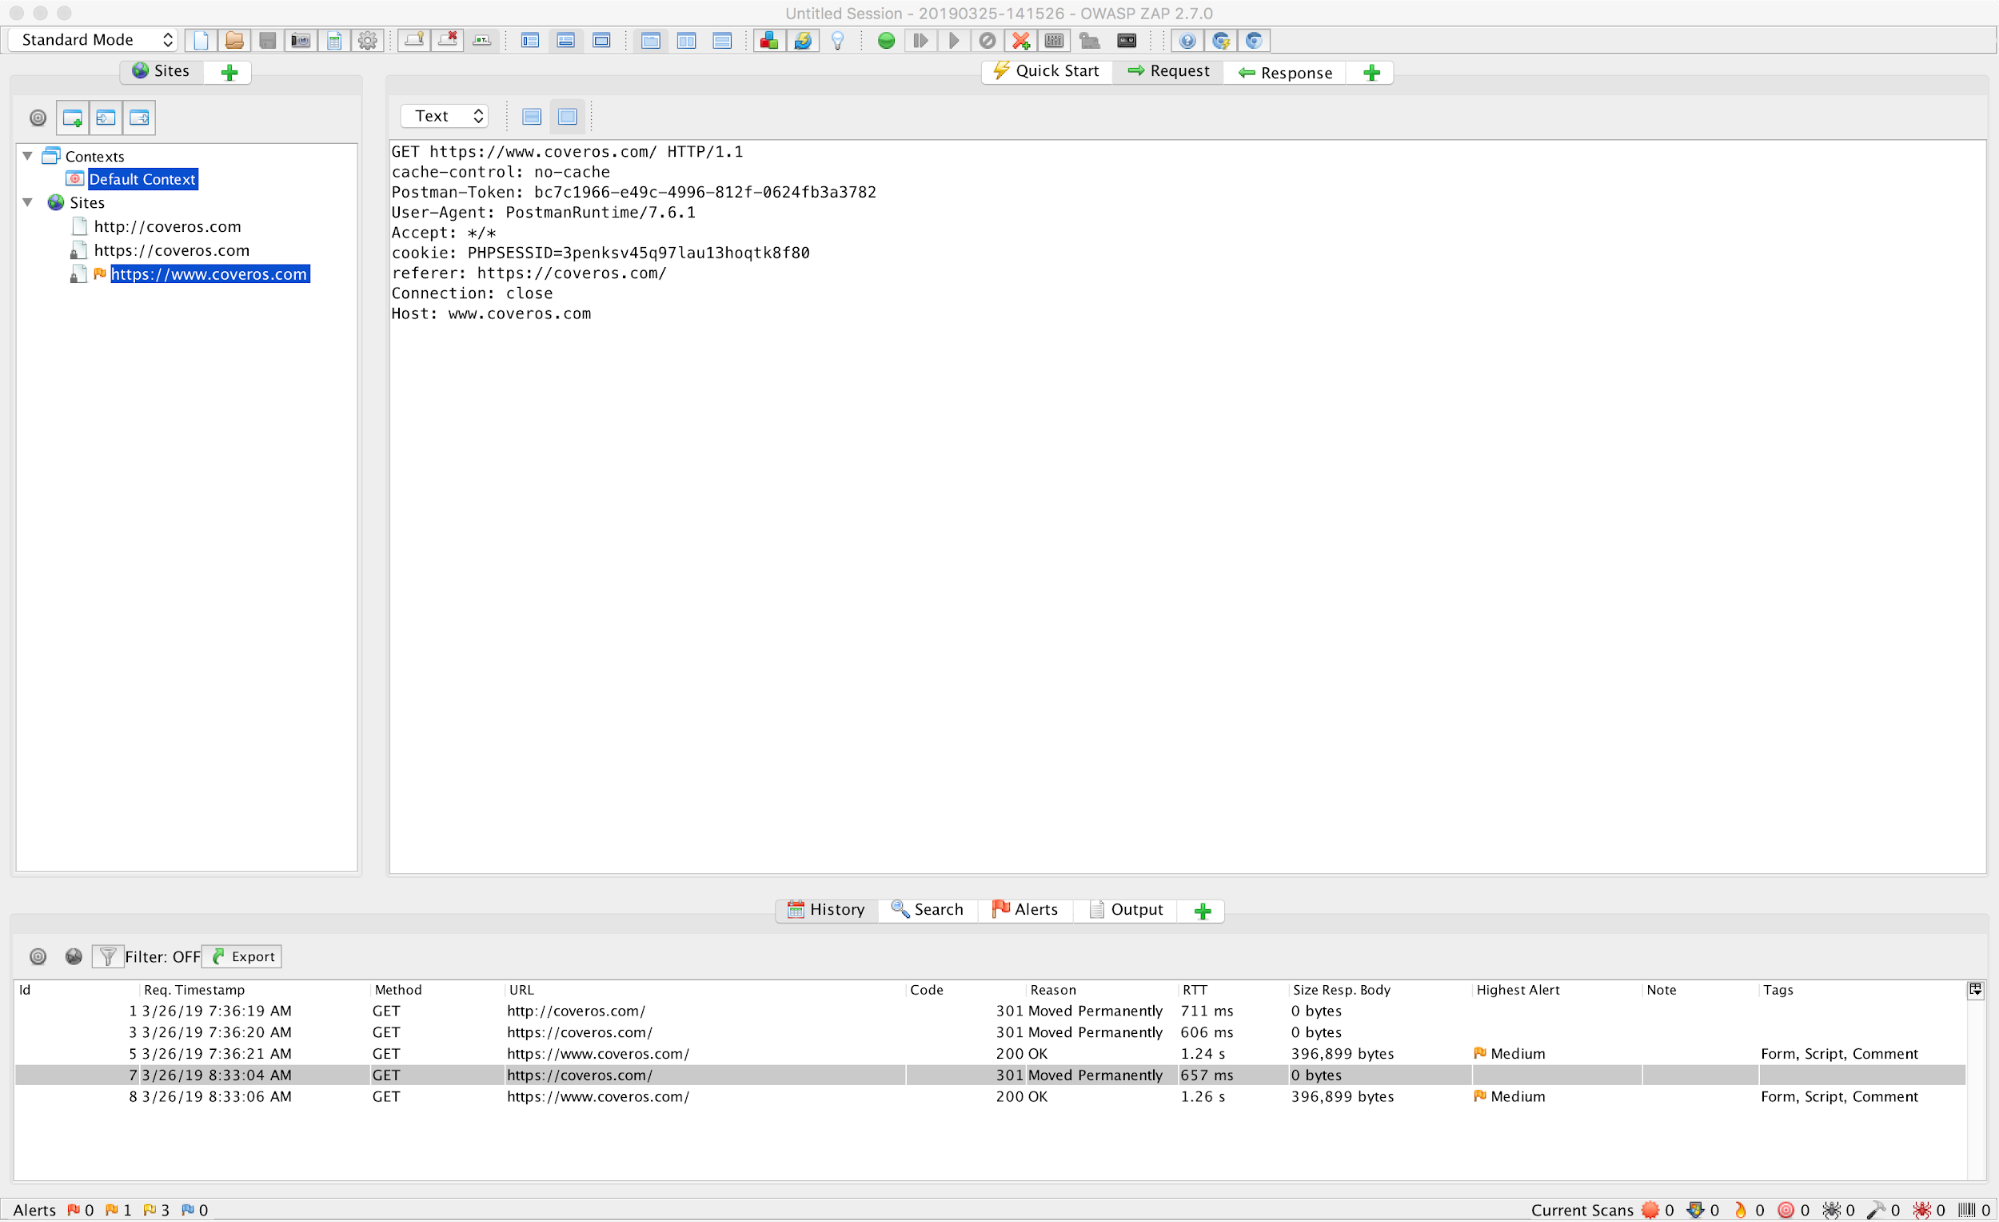 How to Configure Postman to use OWASP ZAP as a Proxy - Coveros